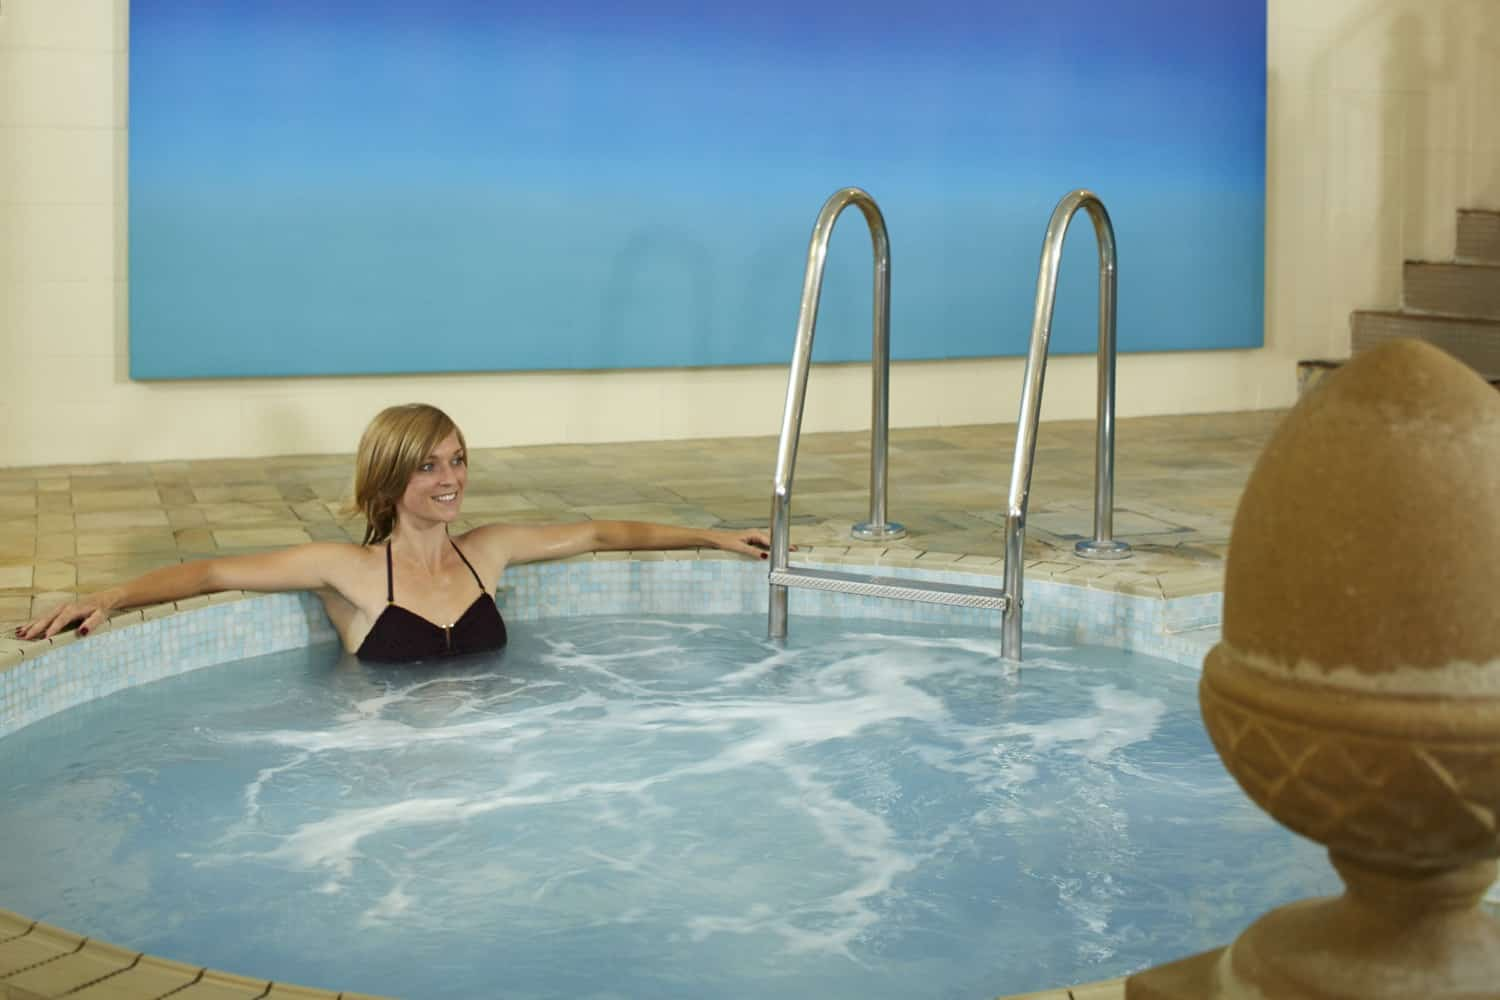 Relax in Aquilla Whirlpool